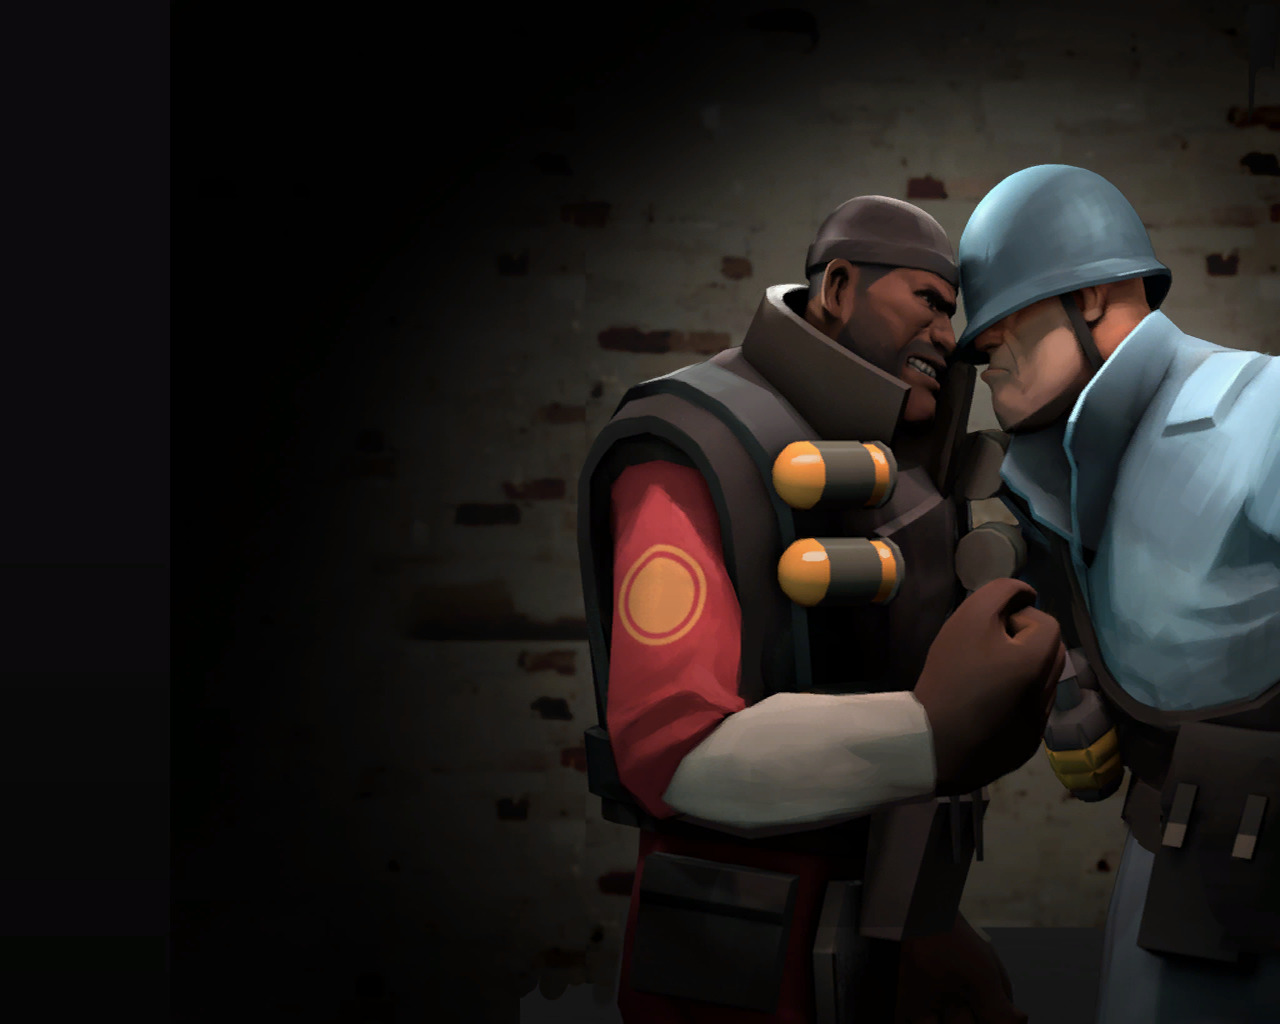 demoman team fortress 2 HD Wallpaper